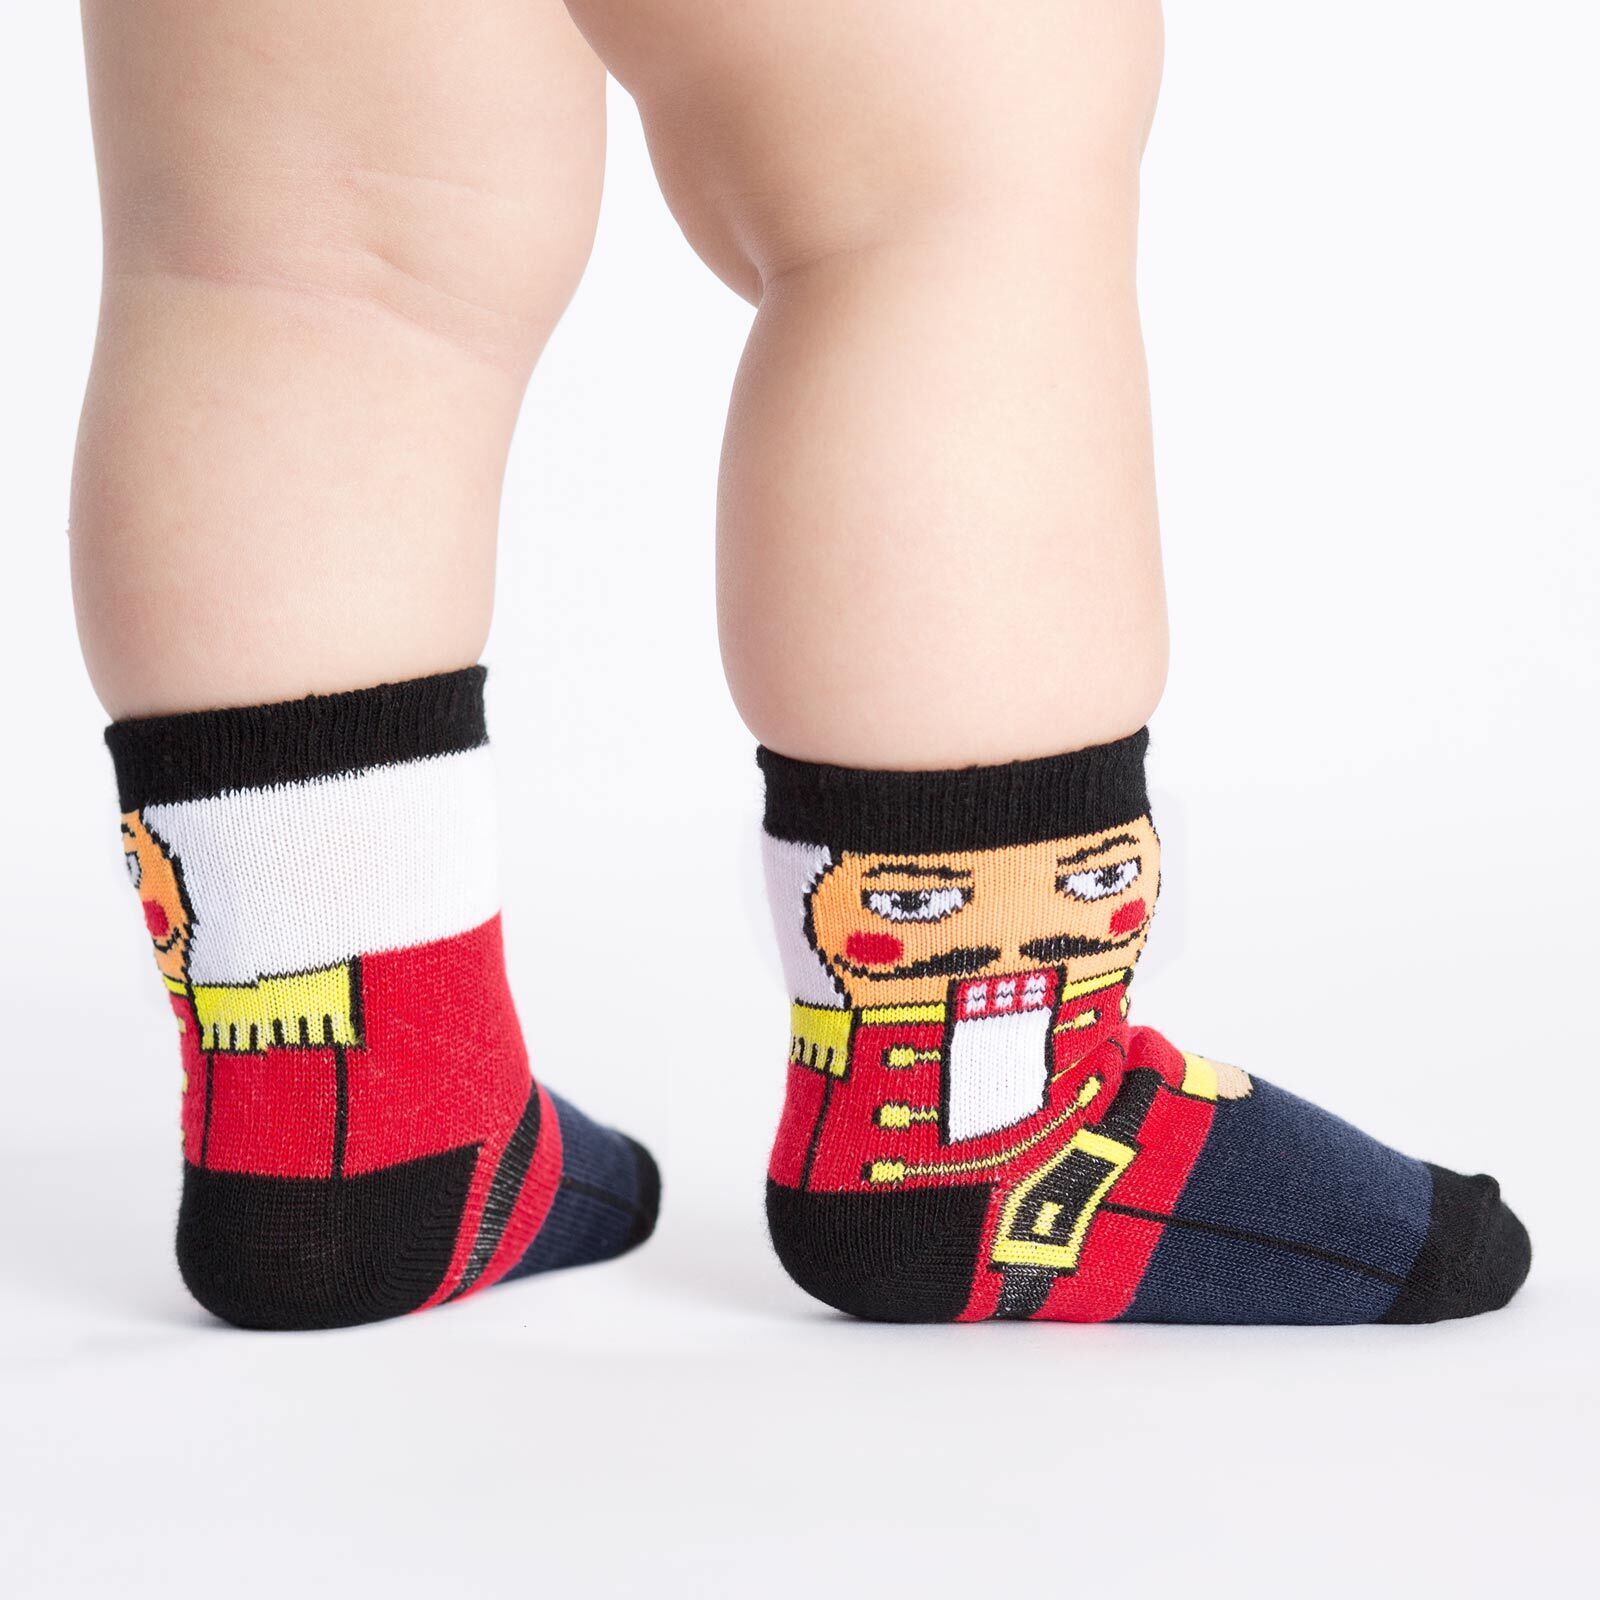 model side view of Nutcracker - Classic Holiday Wooden Nutcracker Soldier Crew Socks Navy Blue - Toddler